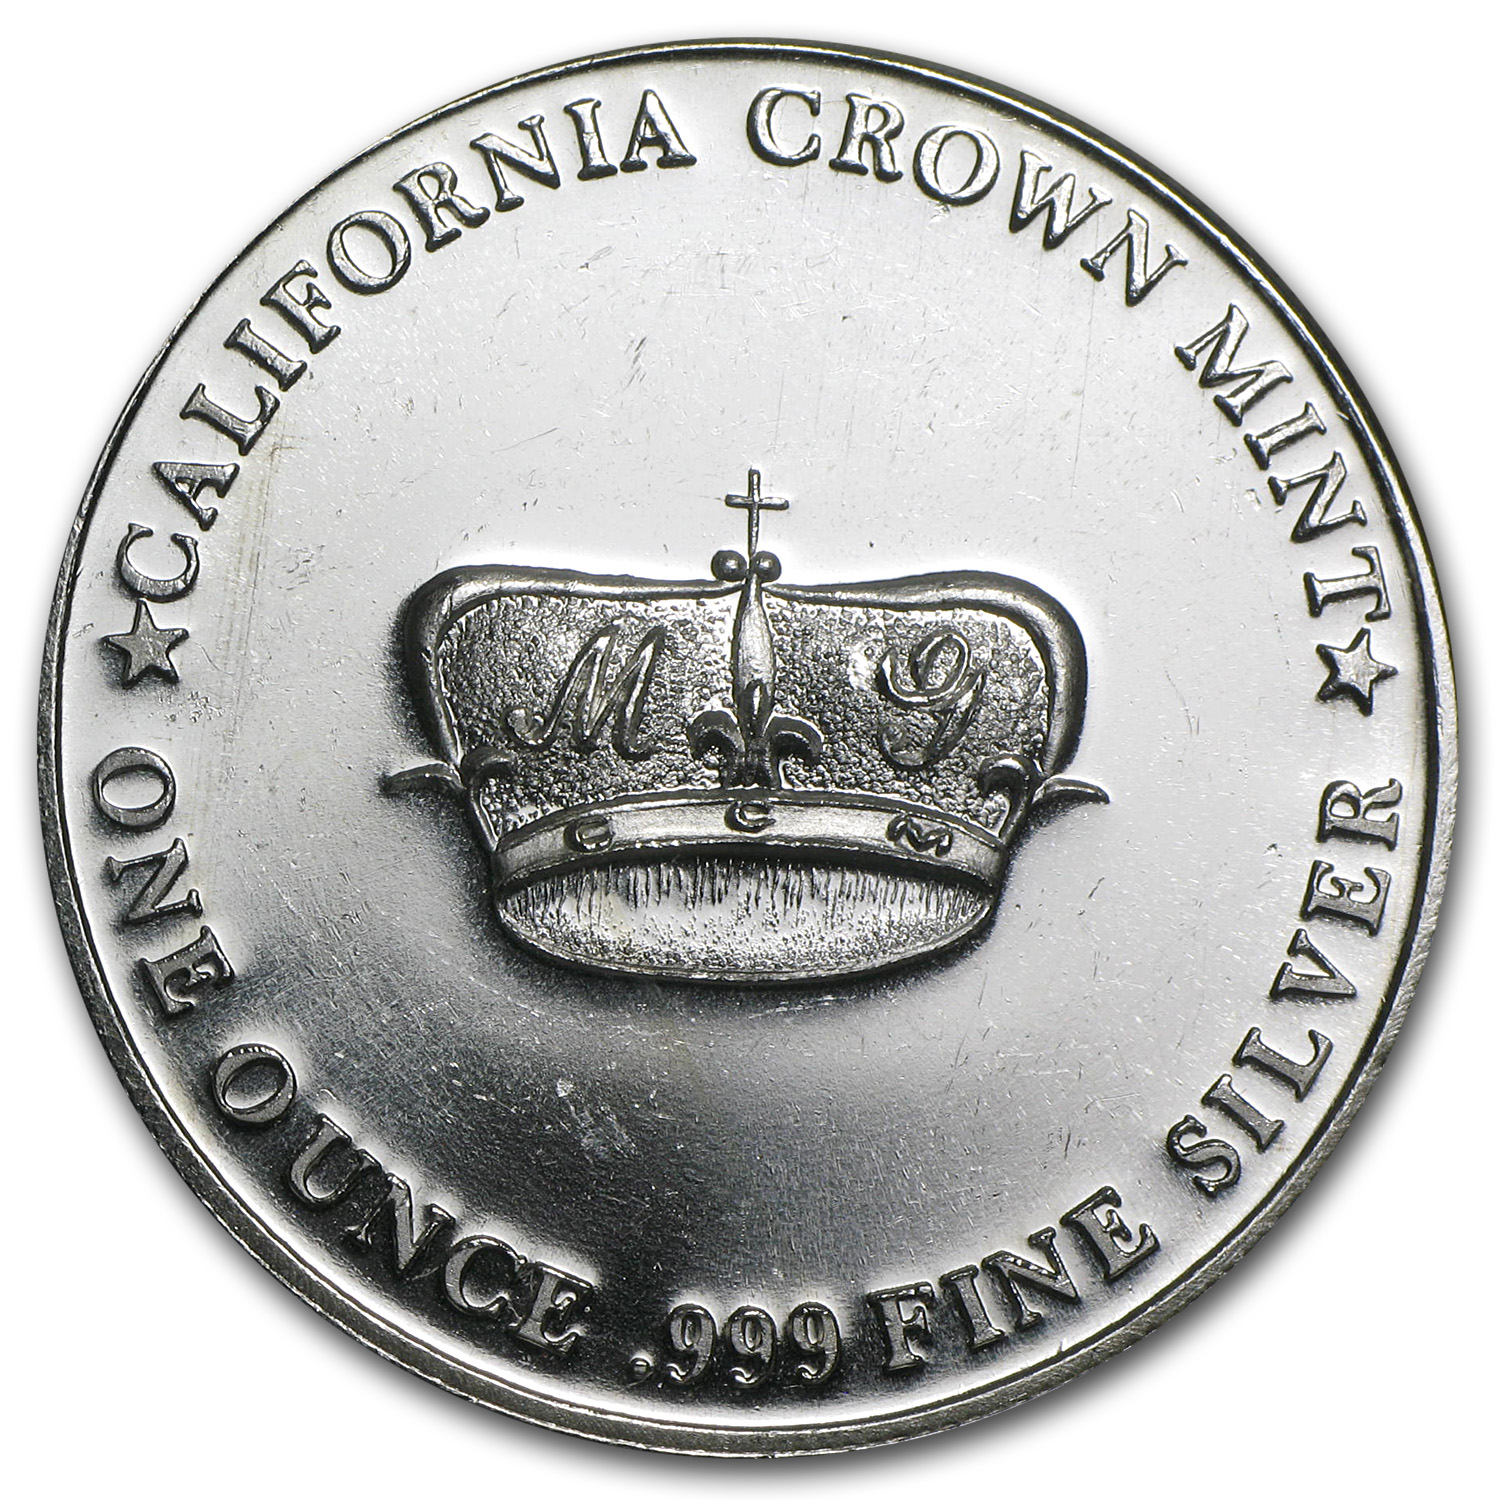 1 oz Silver Round - MG Crown